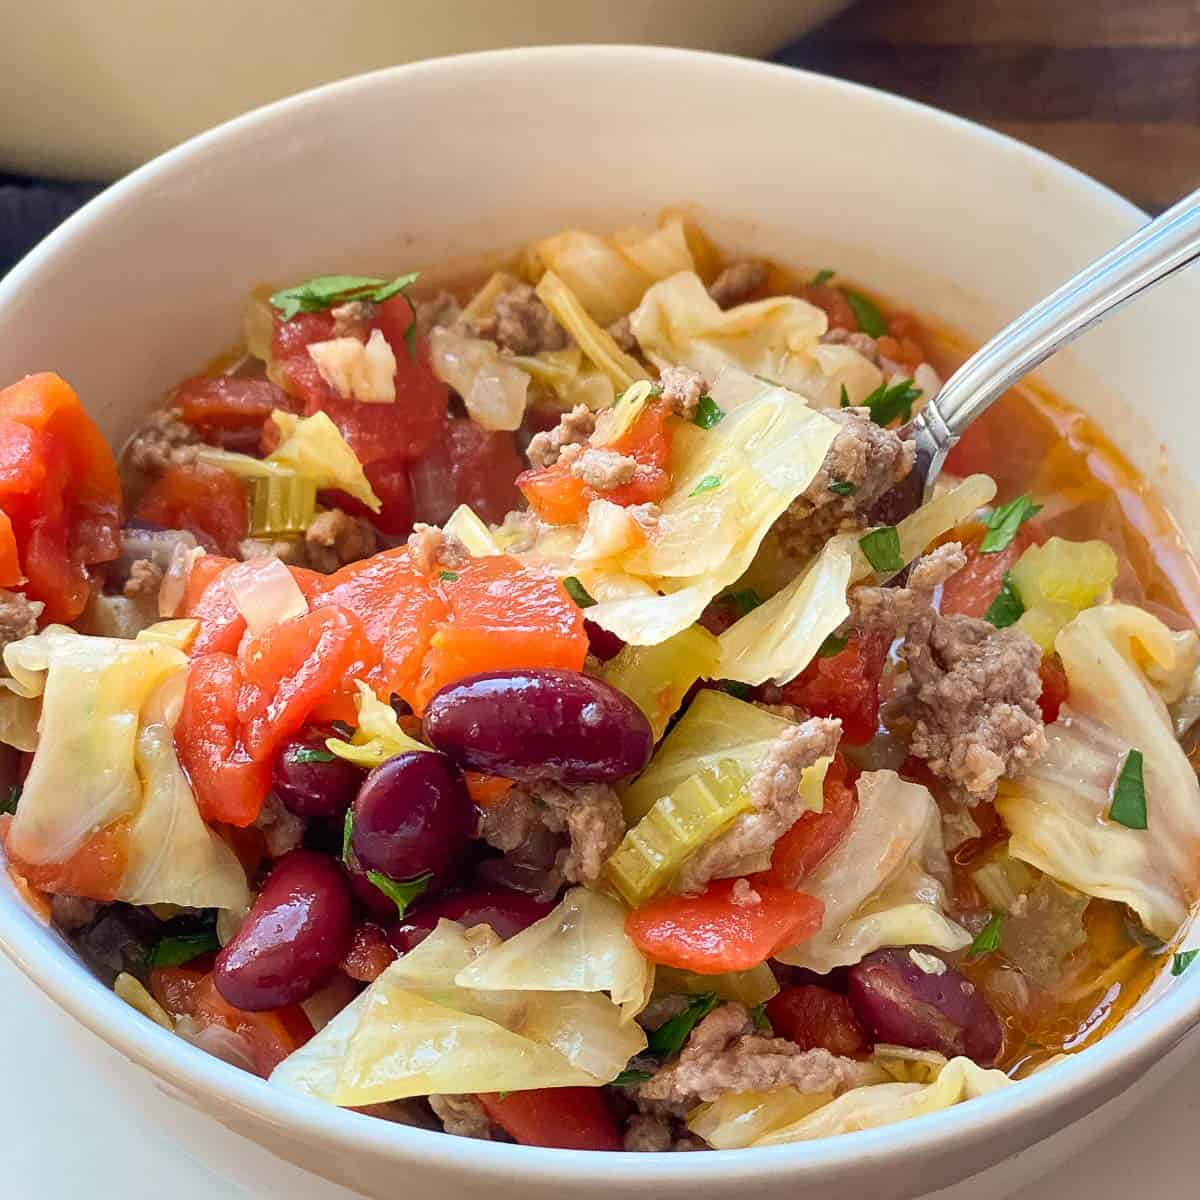 Image showing a white bowl of yummy beef and cabbage soup.